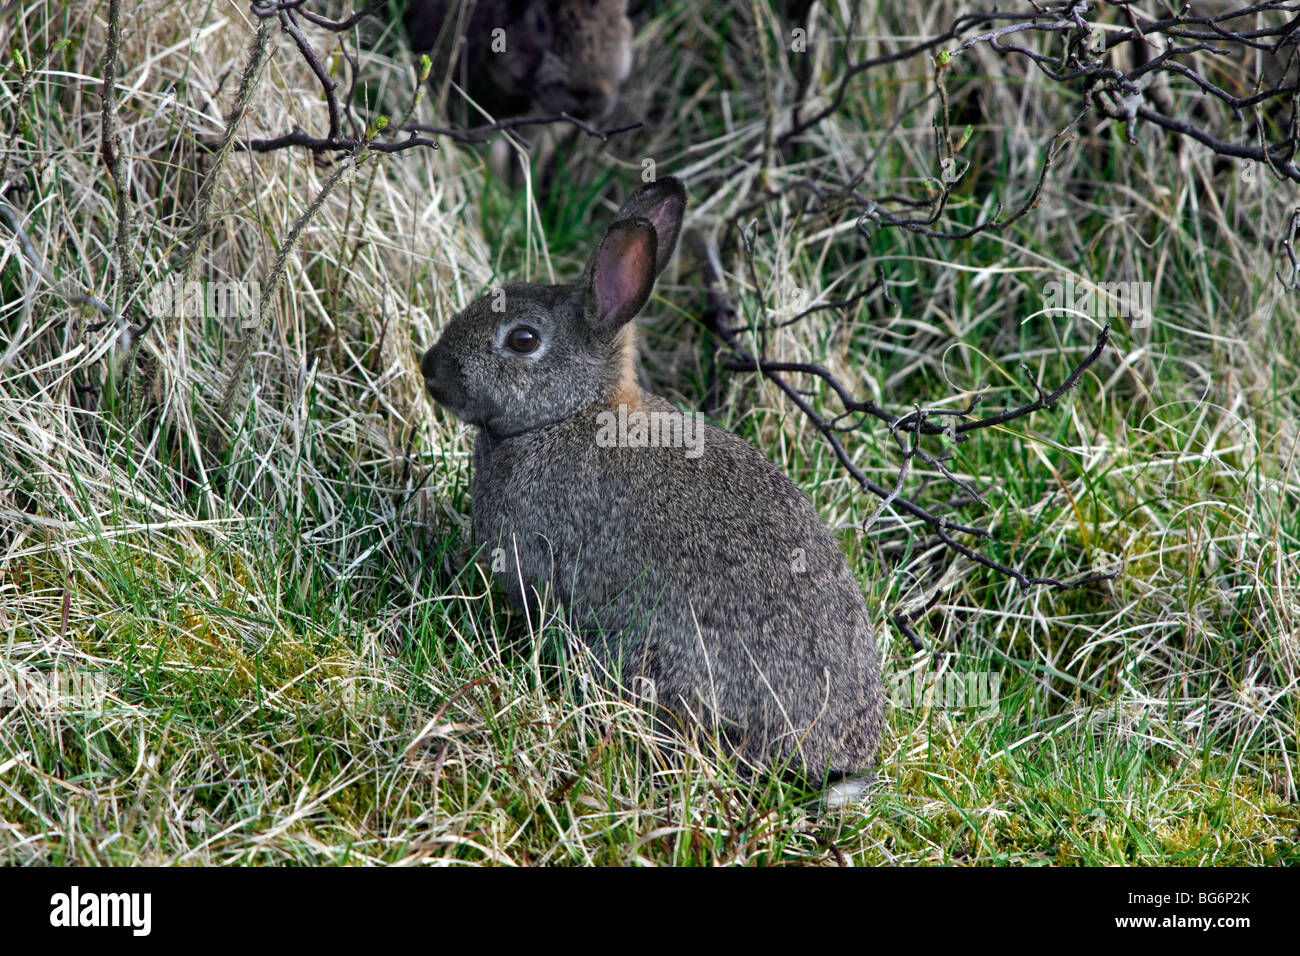 Rabbit (Oryctolagus cuniculus) in shrubs / thicket - Stock Image